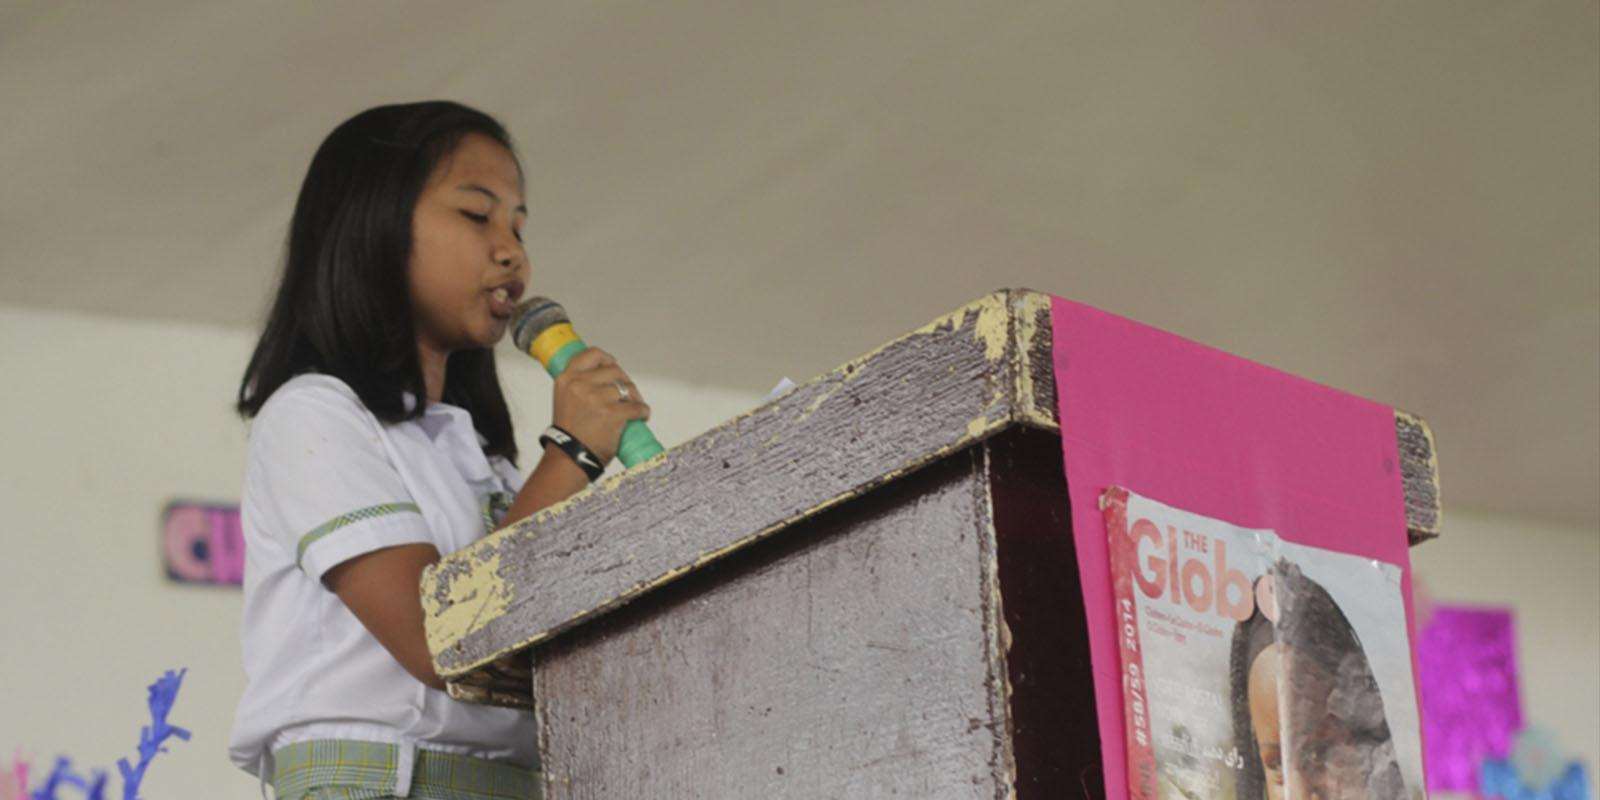 Girl on podium speaking